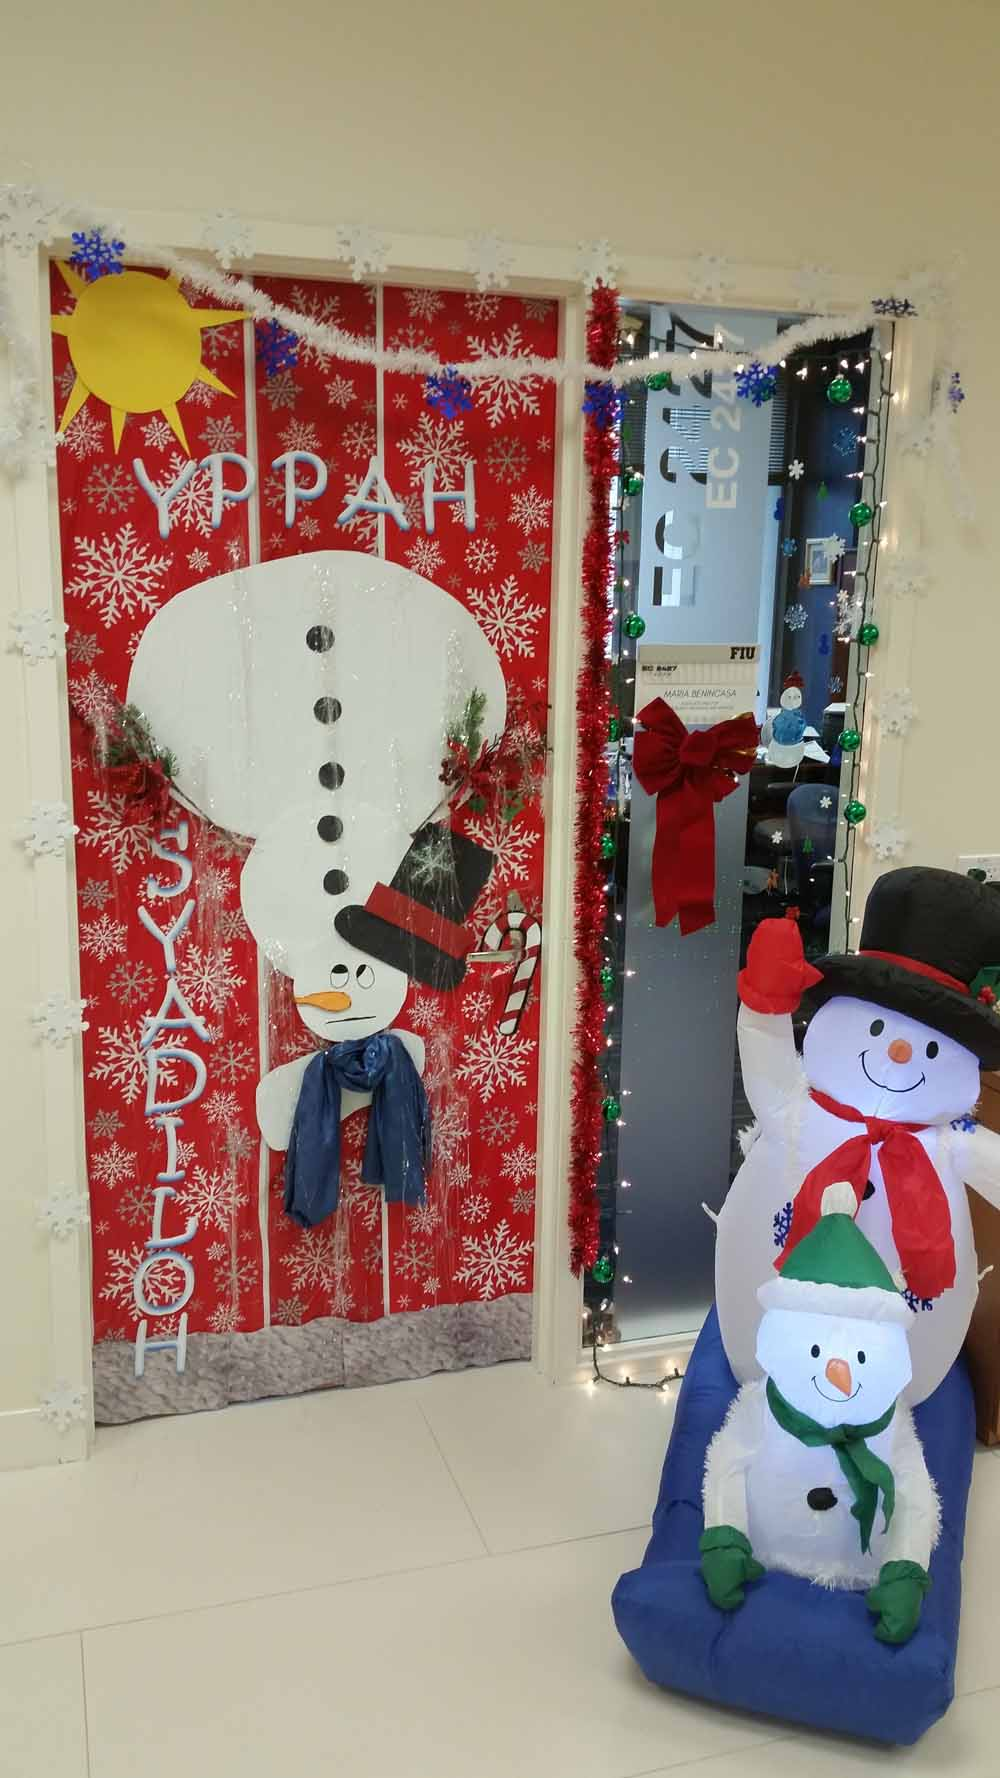 office holiday decorations. Had A Holiday Decoration Competition In Which Our Employees Decorated Their Office Desks And Doors. We Then Asked Everyone To Vote Pick The Winner. Decorations